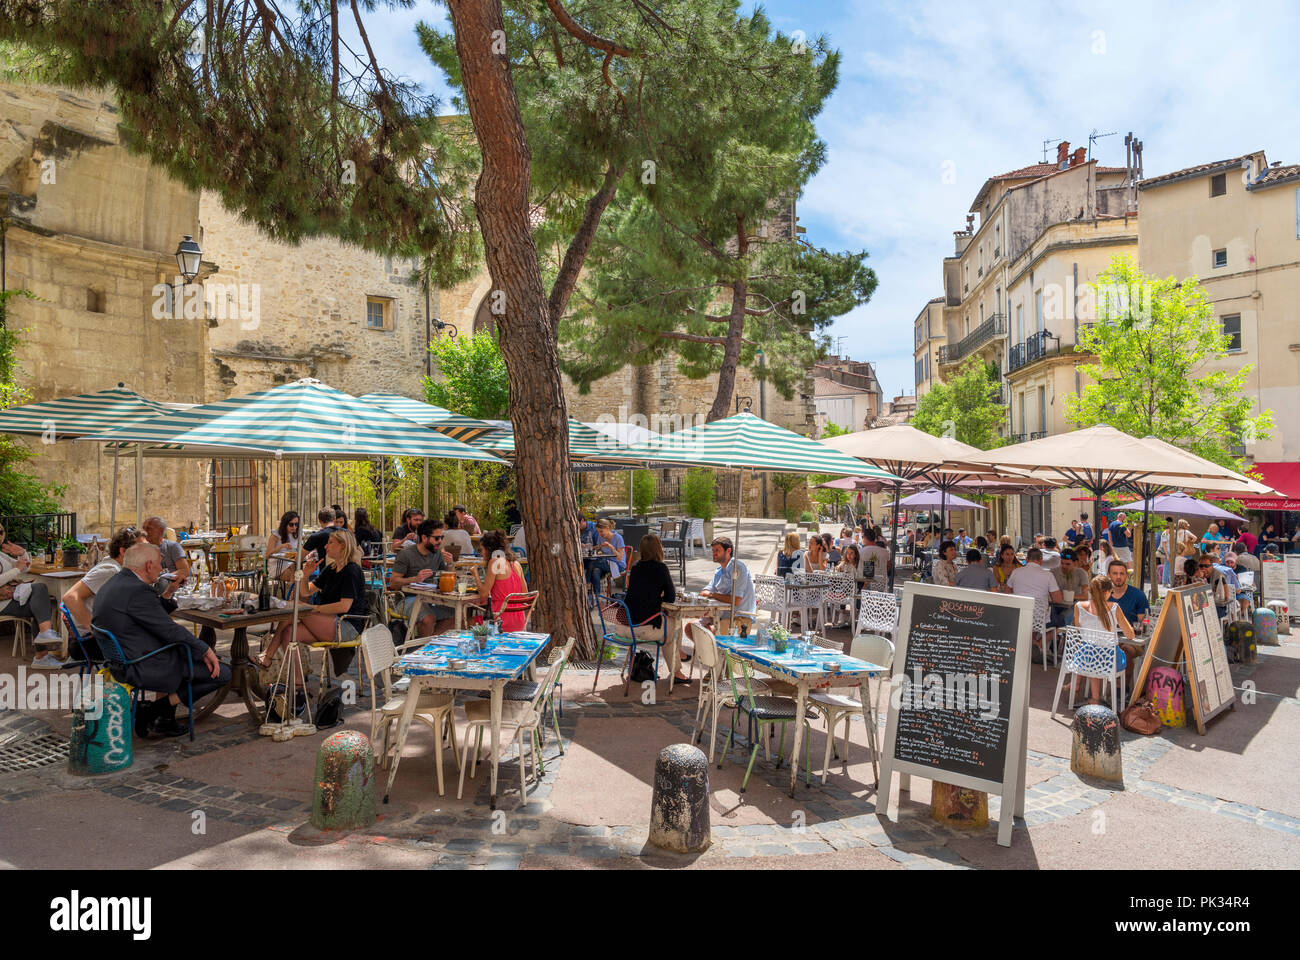 Cafes and restaurants on Rue Saint-Paul in the historic old town, Montpellier, Languedoc, France Stock Photo